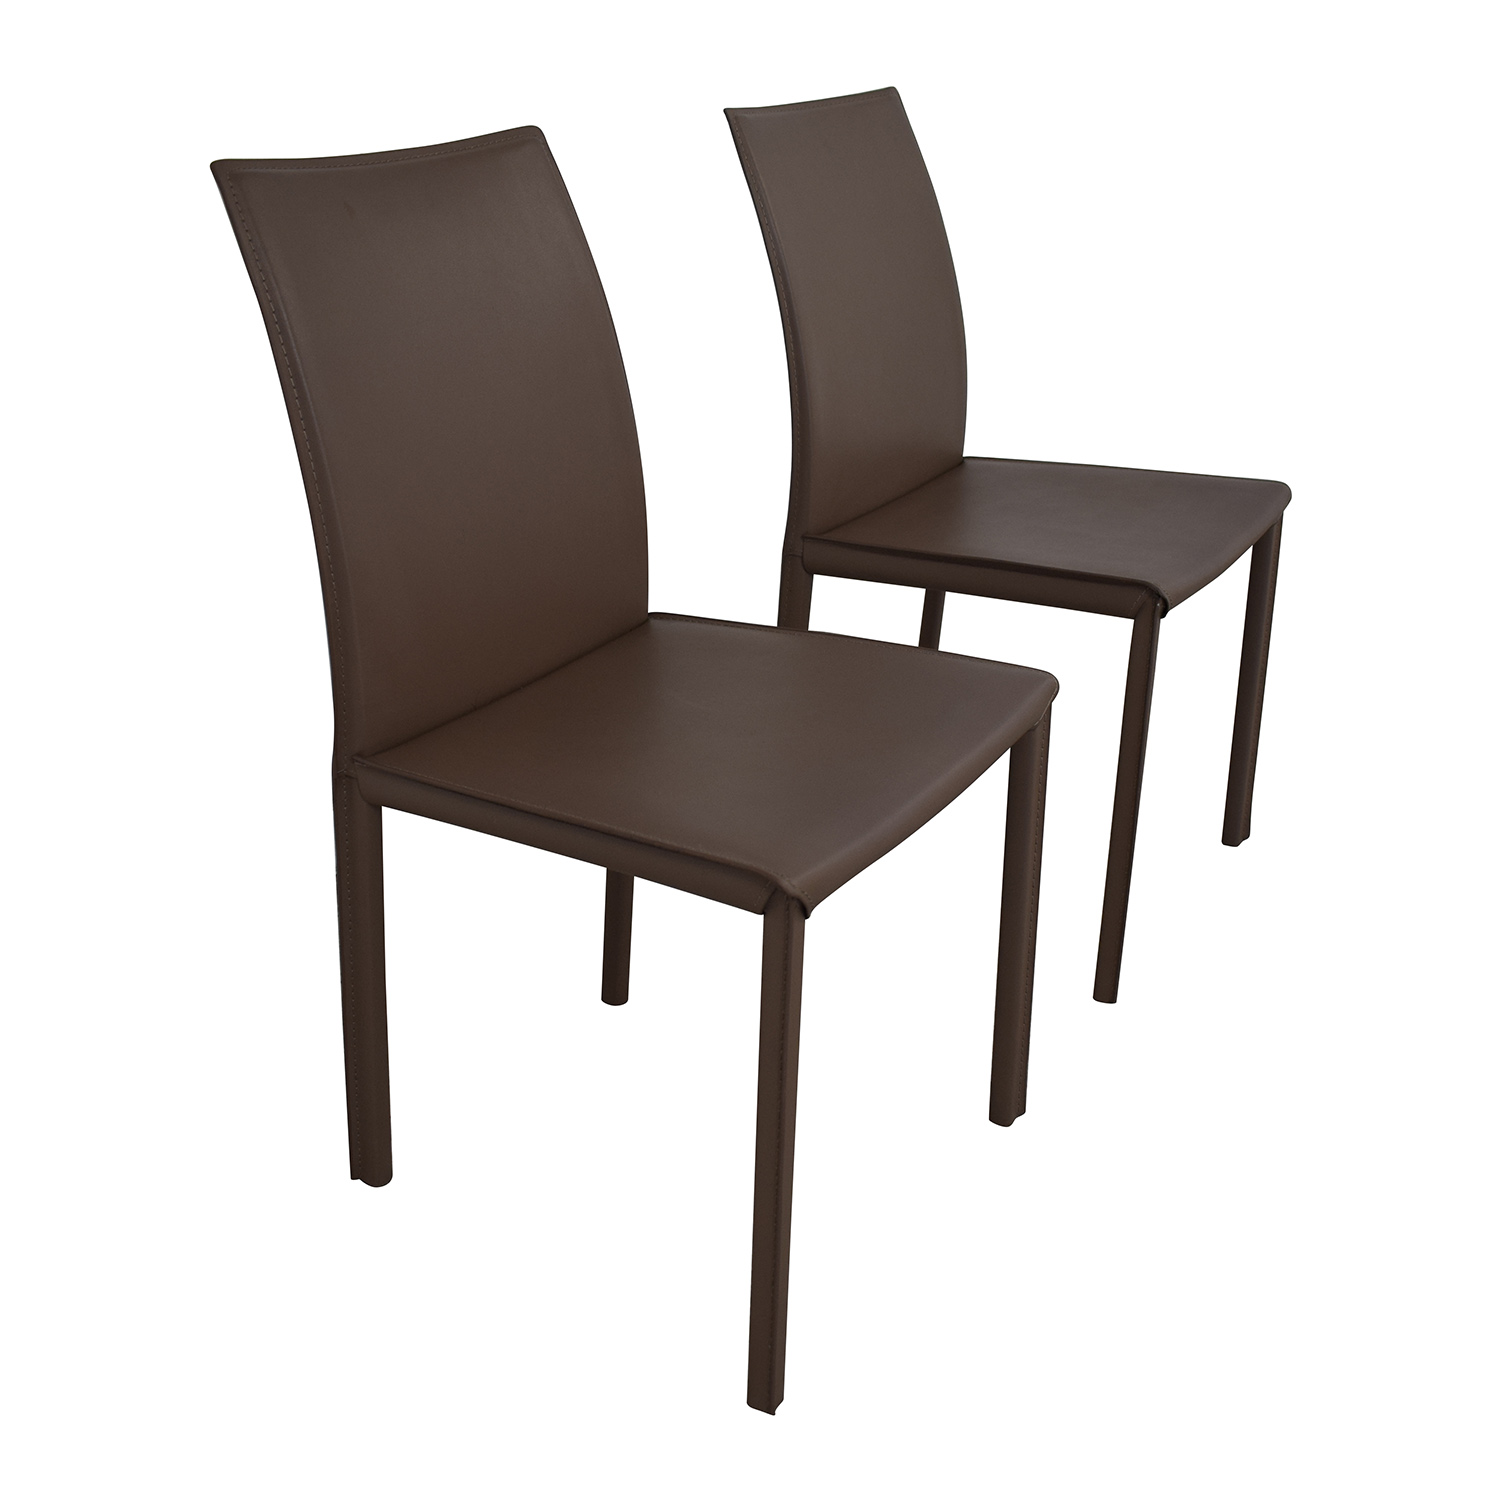 BoConcept BoConcept Dining chairs used